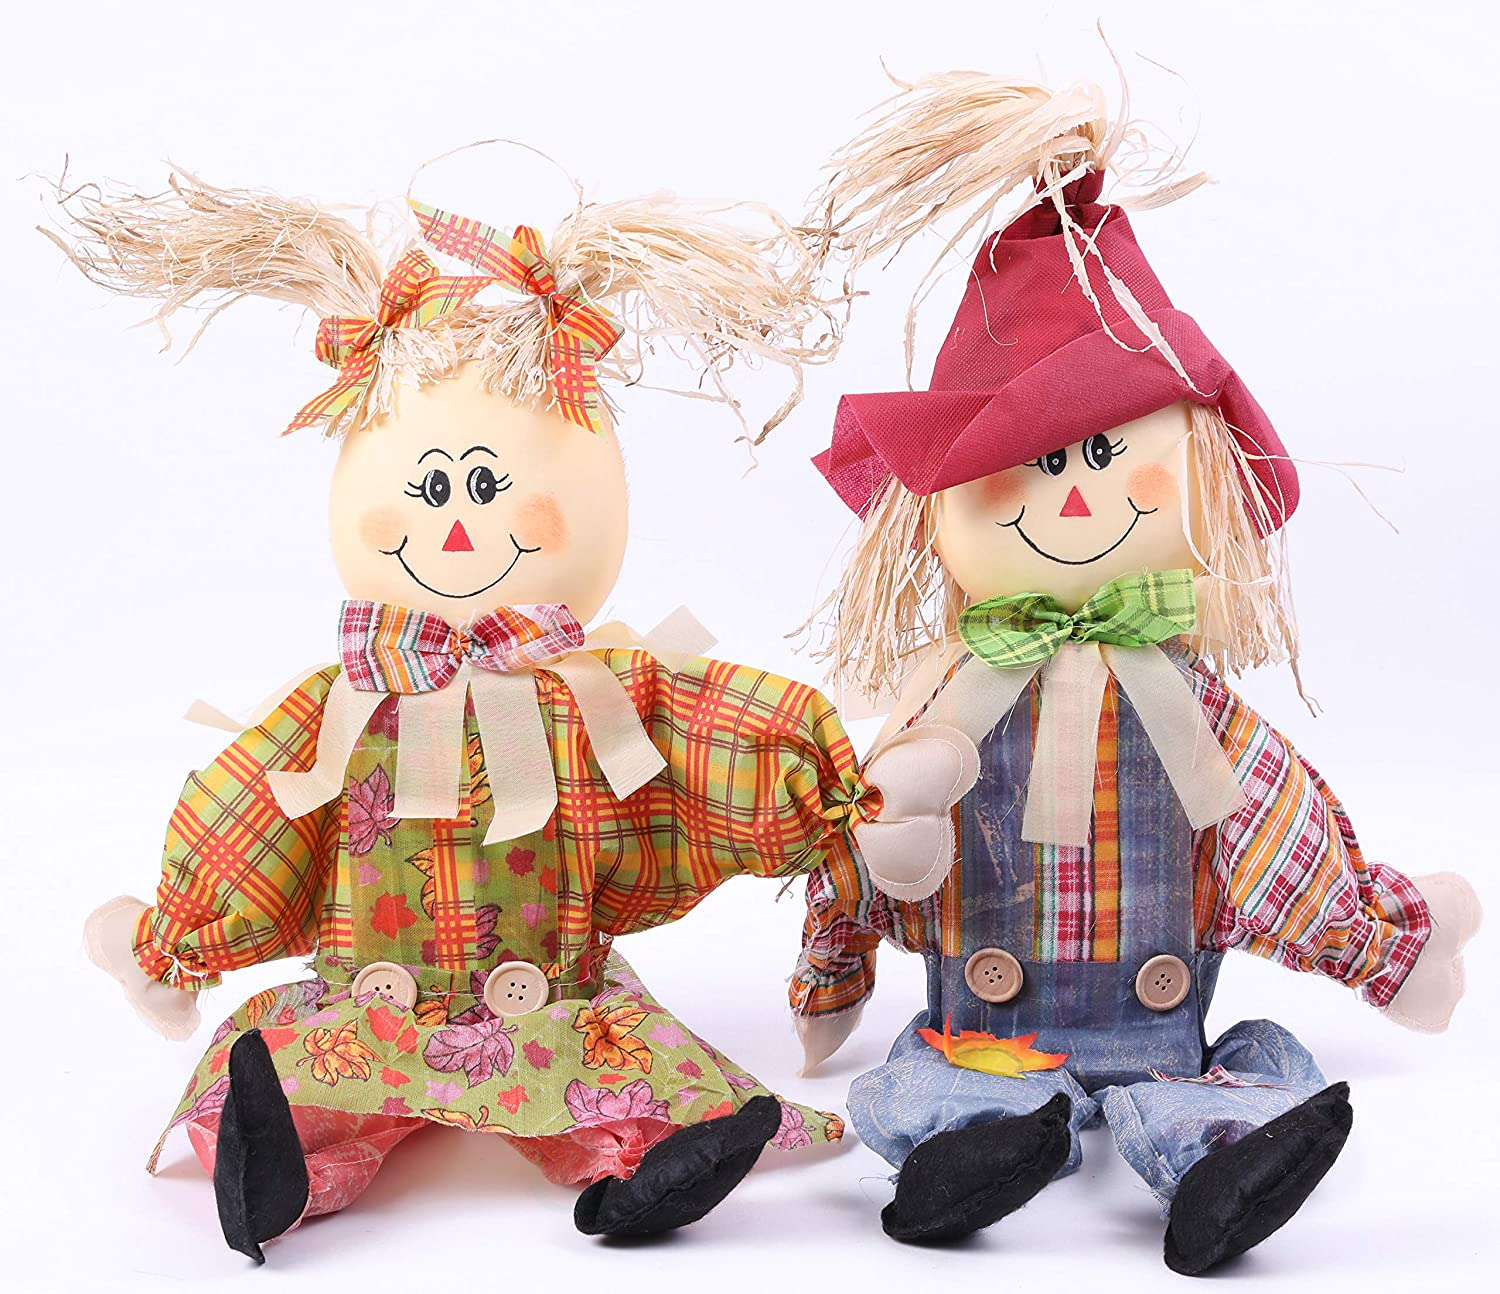 Gardenised QI003422 24 Inch Sitting Scarecrow Sister and Brother Set with Red Hat